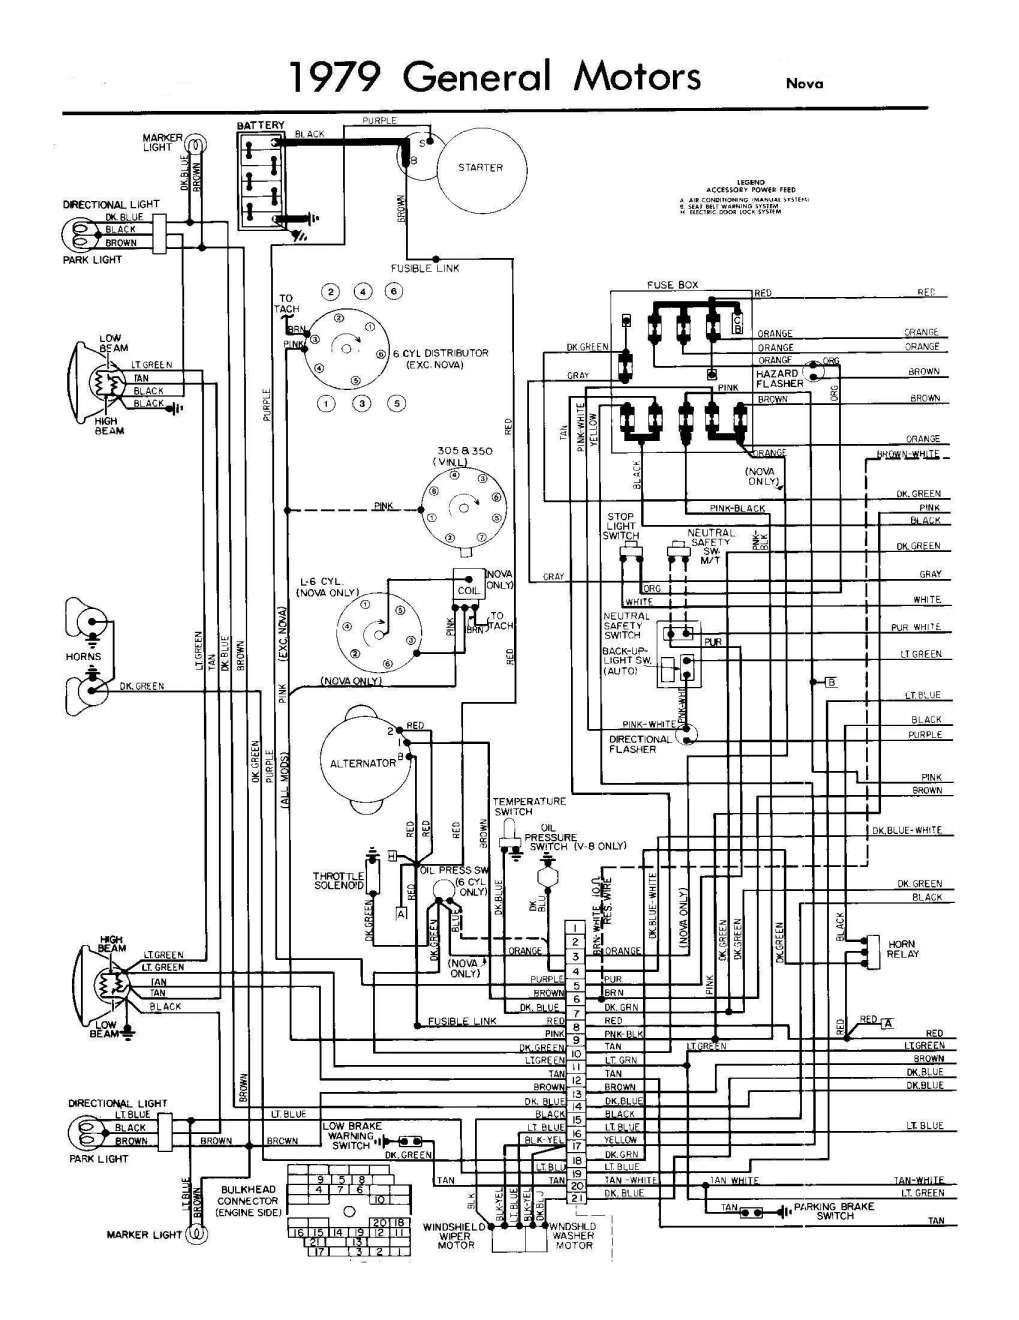 Chevy 305 Engine Wiring Diagram And Corvette Engine Wiring Harness Diagram Wiring Diagram Chevy Trucks 1979 Chevy Truck 79 Chevy Truck